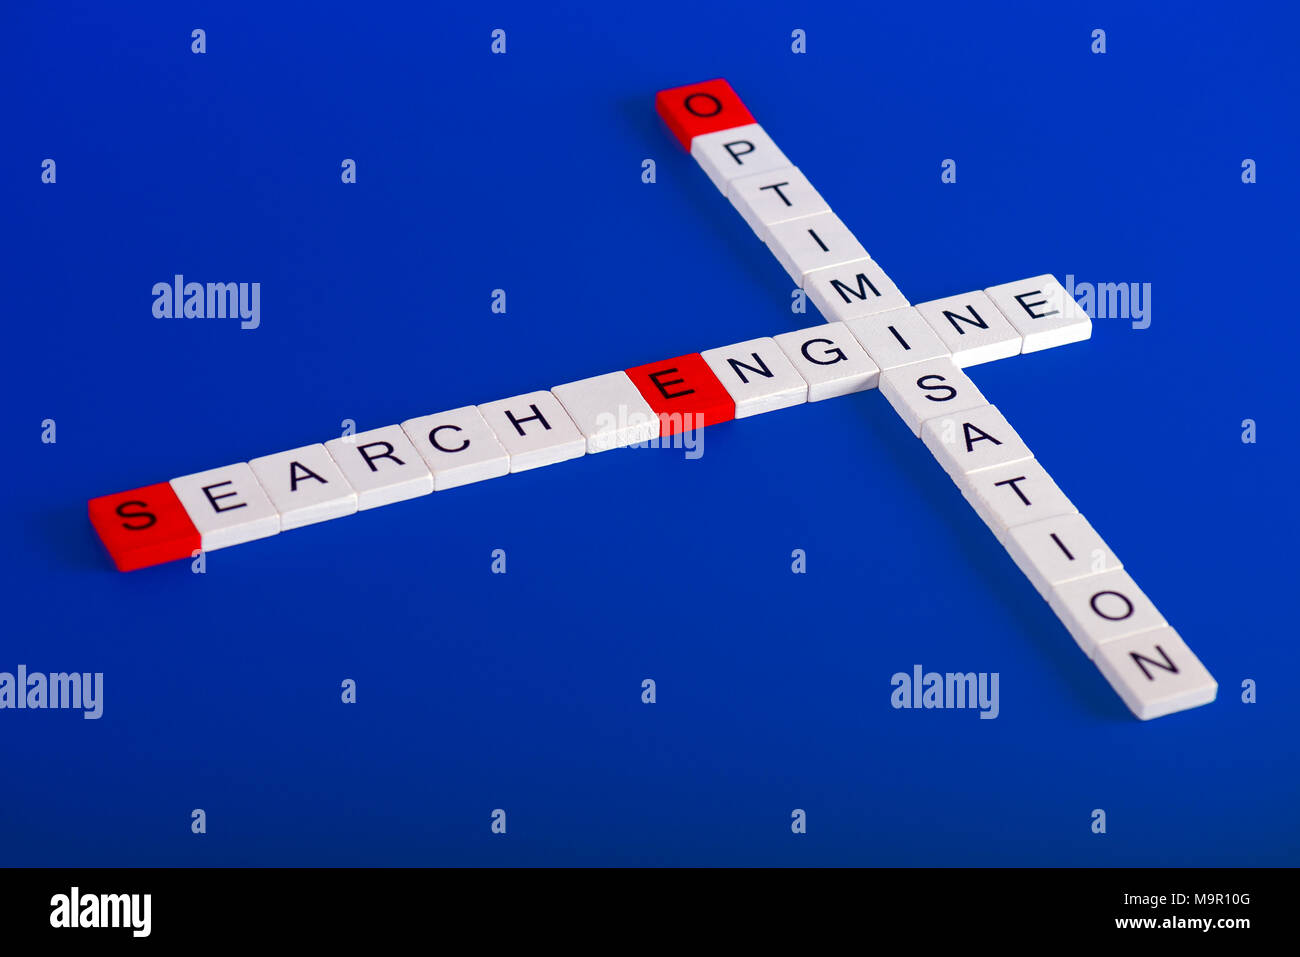 Search Engine Optimisation (SEO) made of white wooden blocks on blue background in crossword style, first letters are red - Stock Image